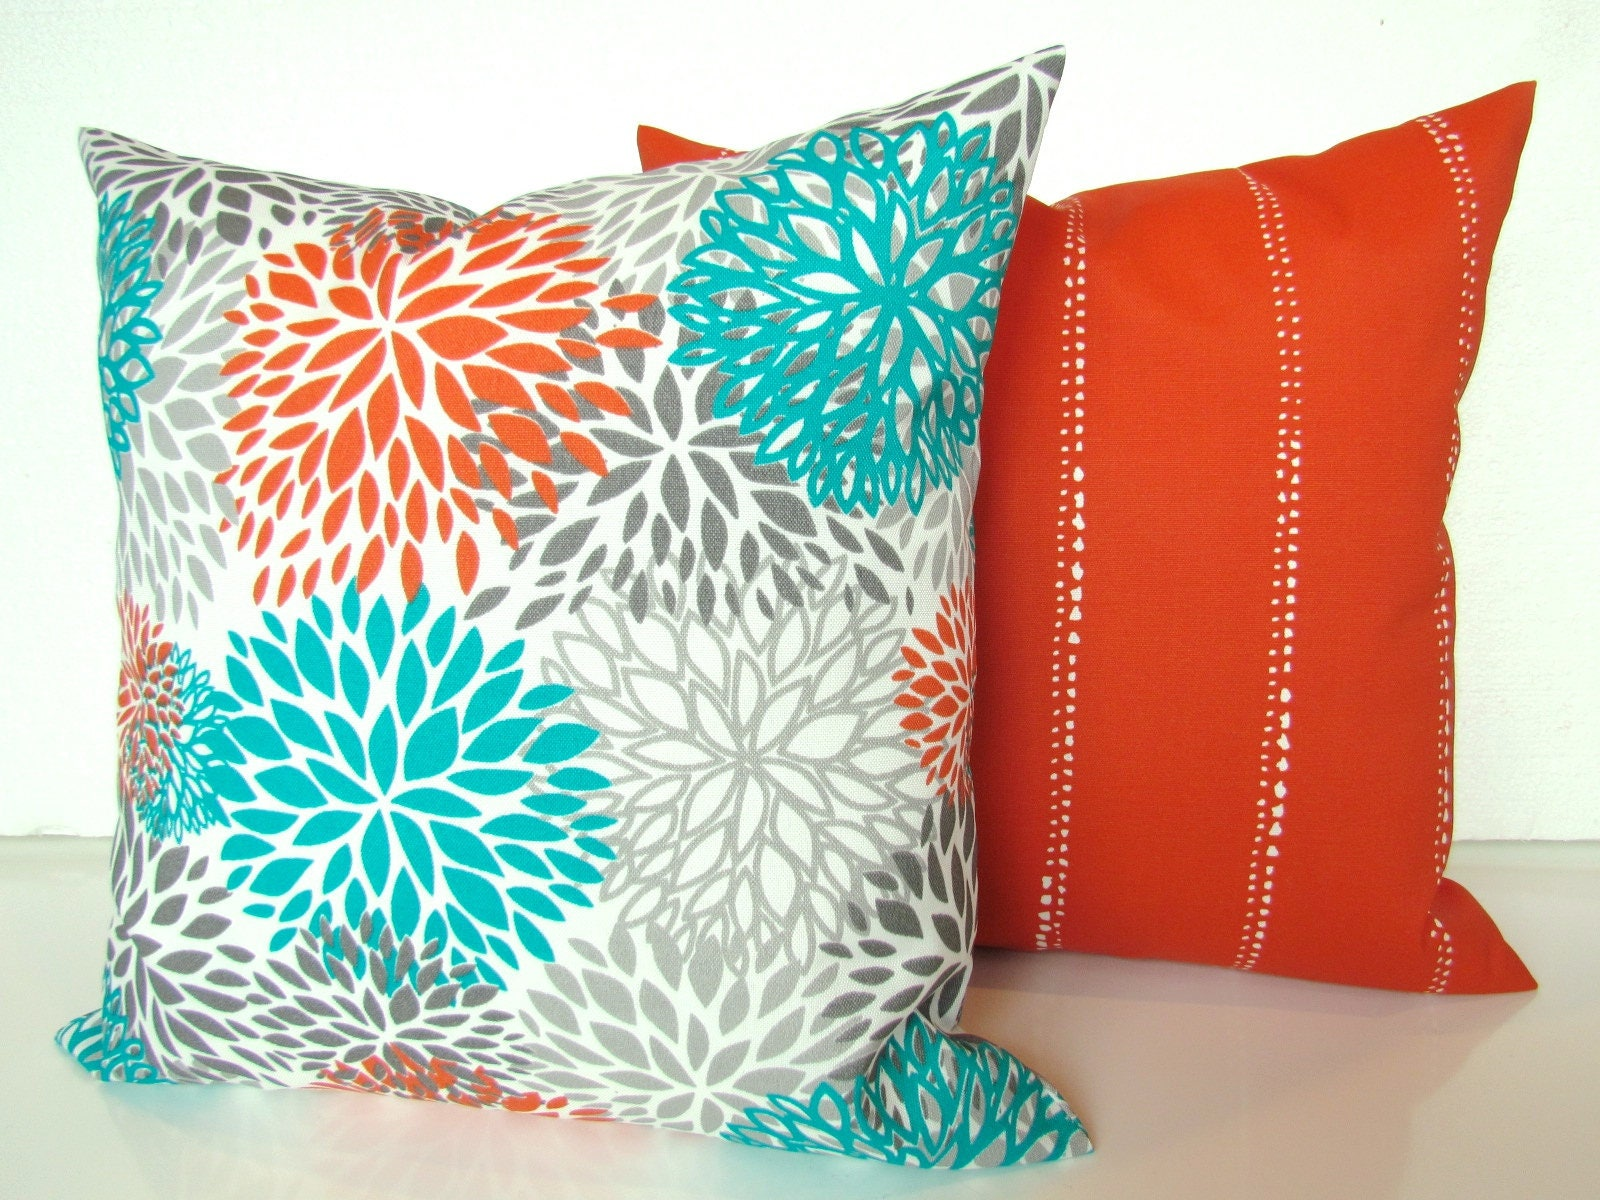 Sale Teal Pillows Turquoise Outdoor Pillow Covers Teal Orange